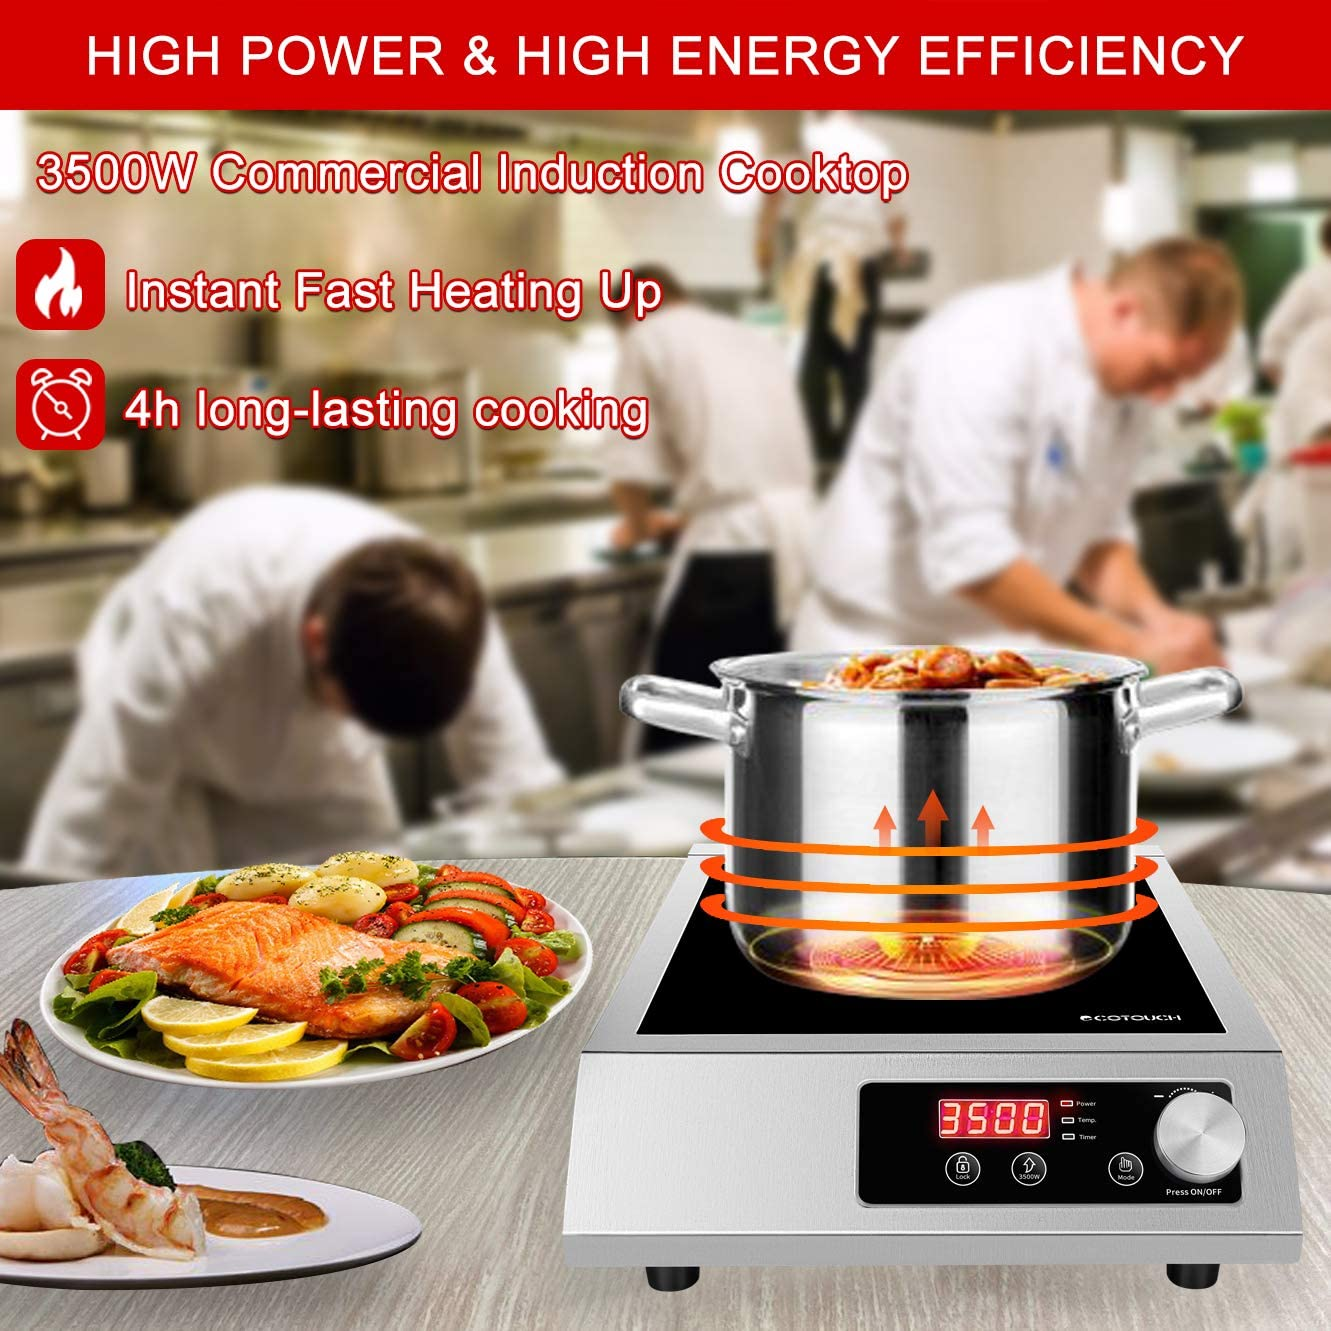 ECOTOUCH Commercial Induction Cooktop